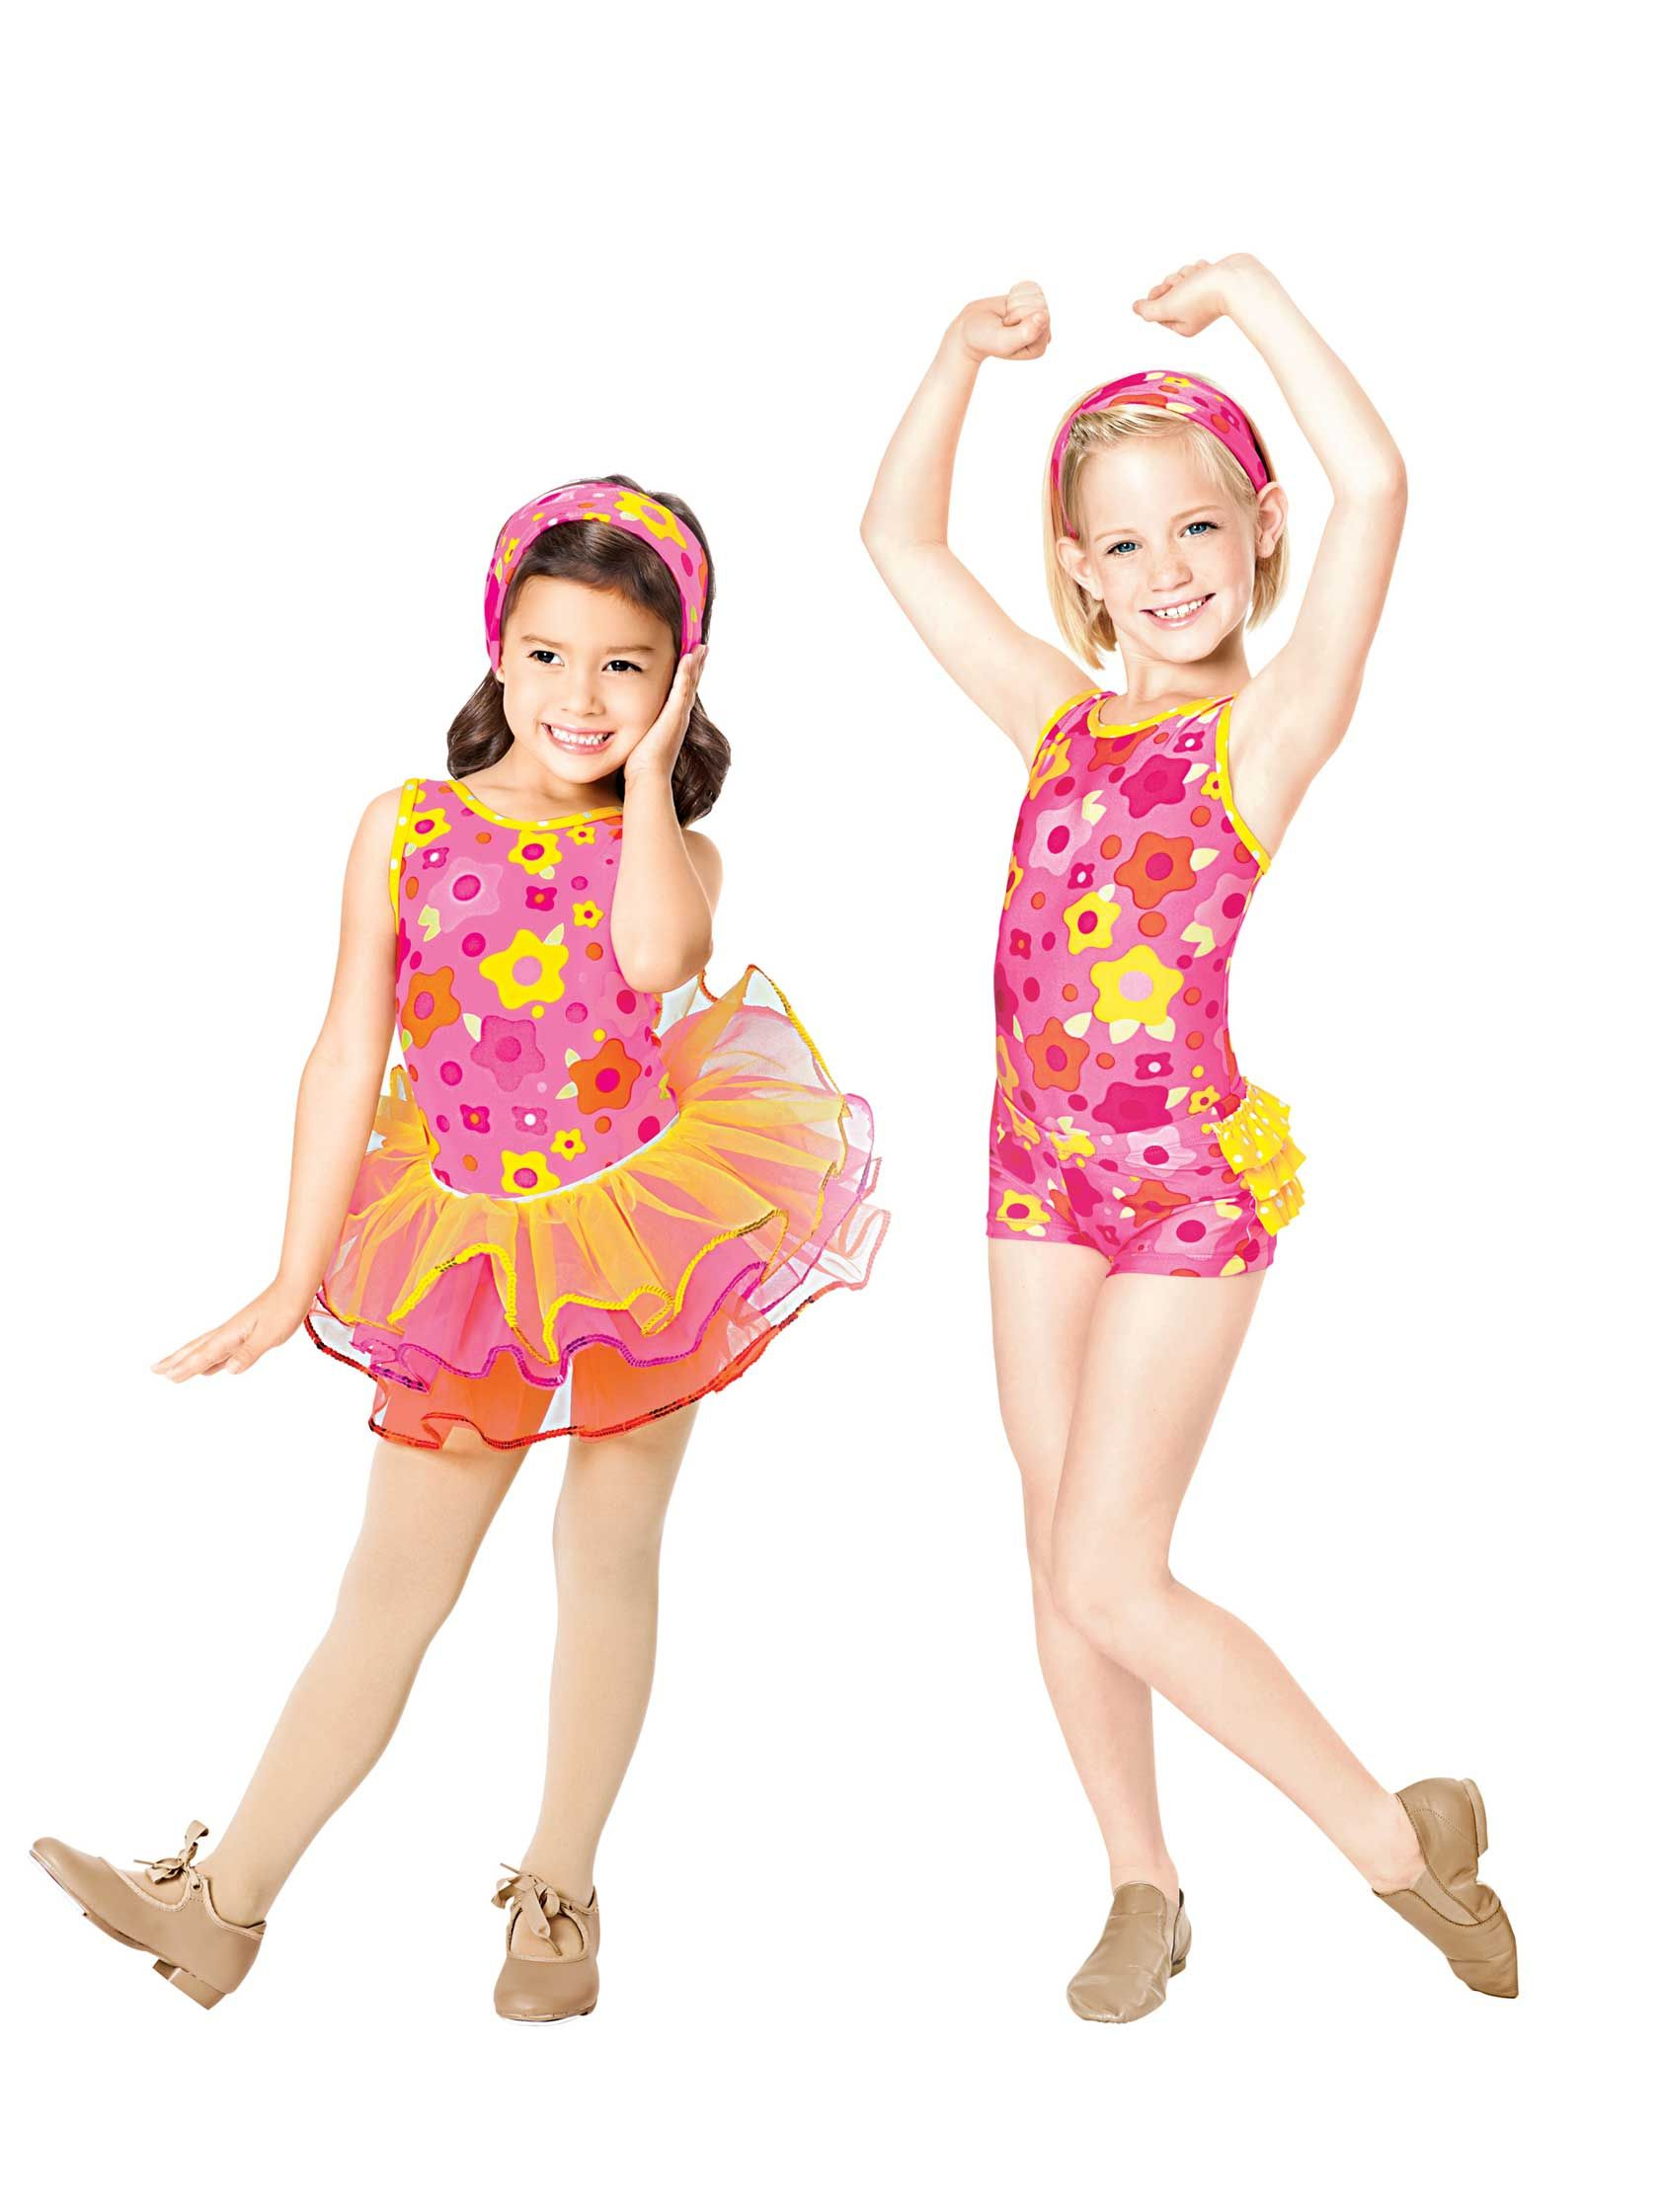 California Gurlz (TH3006c) - by Theatricals. A new costume line by Discount Dance Supply #DiscountDance #Theatricals #wedance #costume #jazz #tap